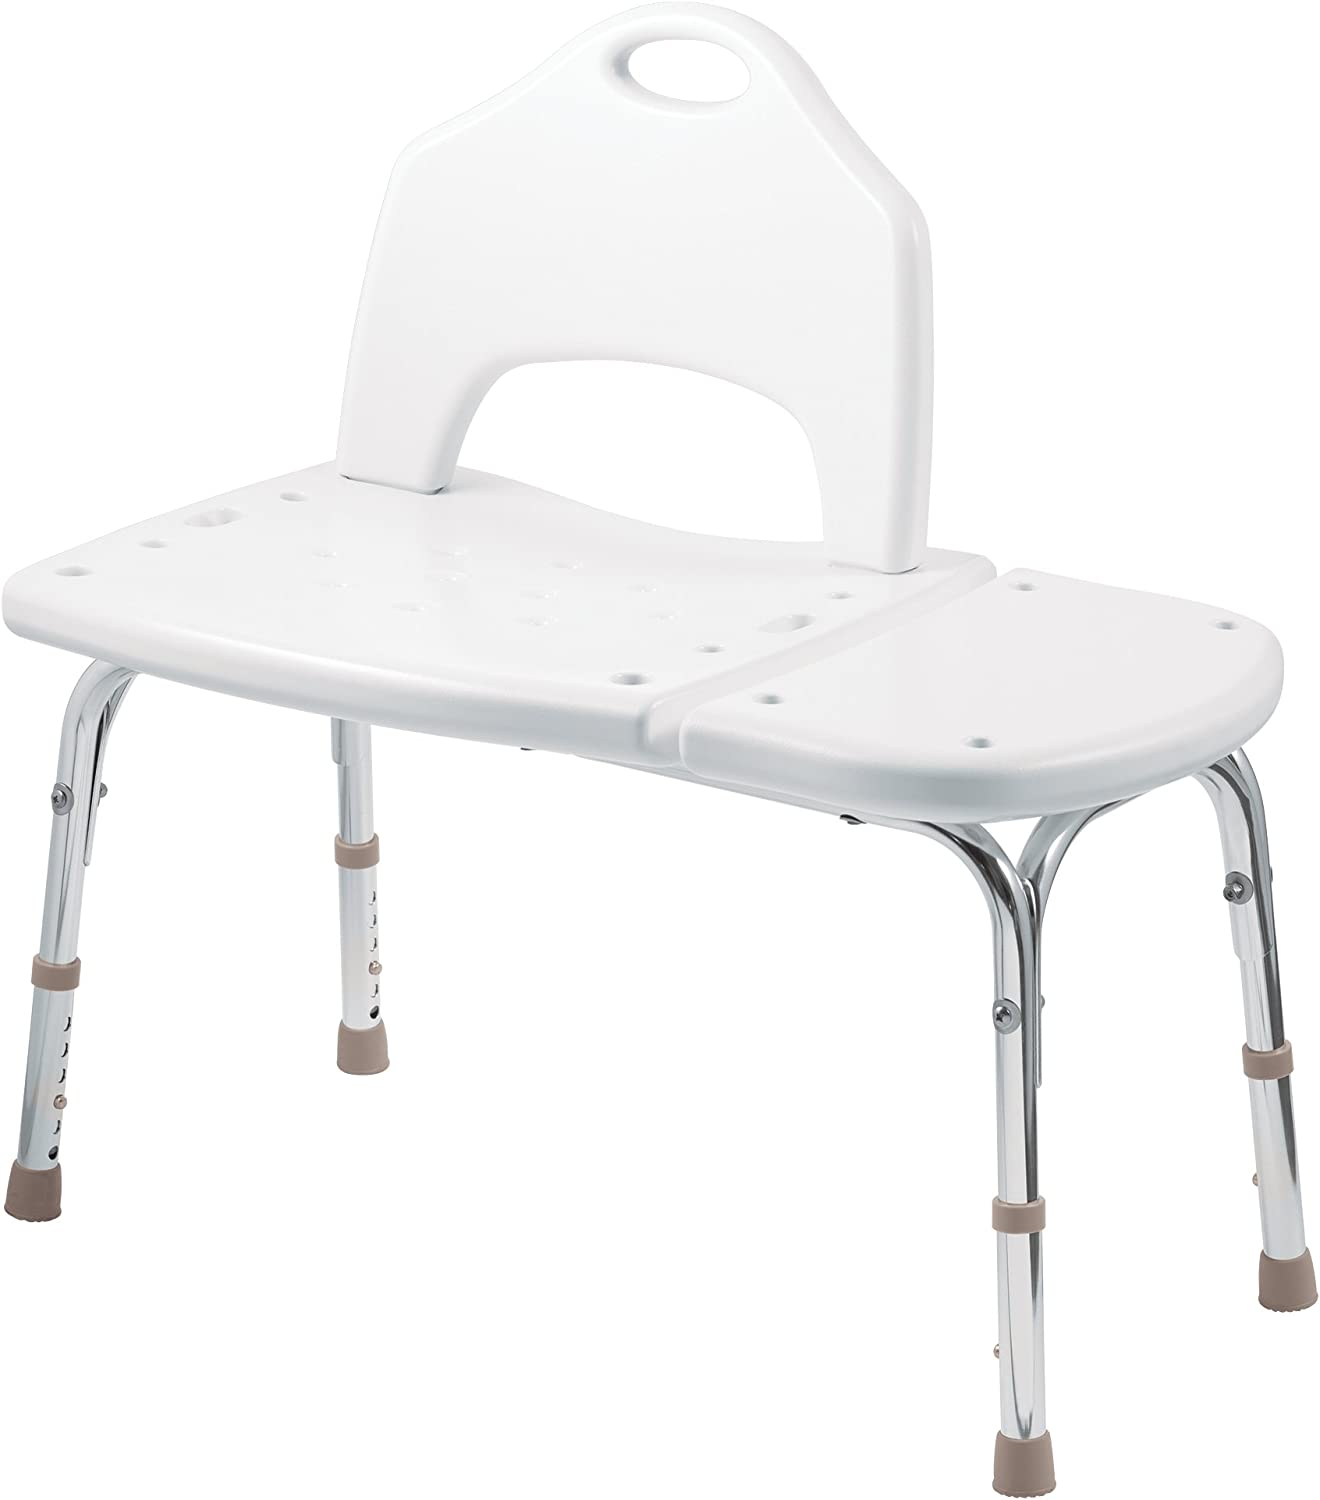 Moen DN7065 Home Care 33.25-Inch W x 19.25-Inch D Adjustable Height Bath Safety Shower Transfer Bench Glacier